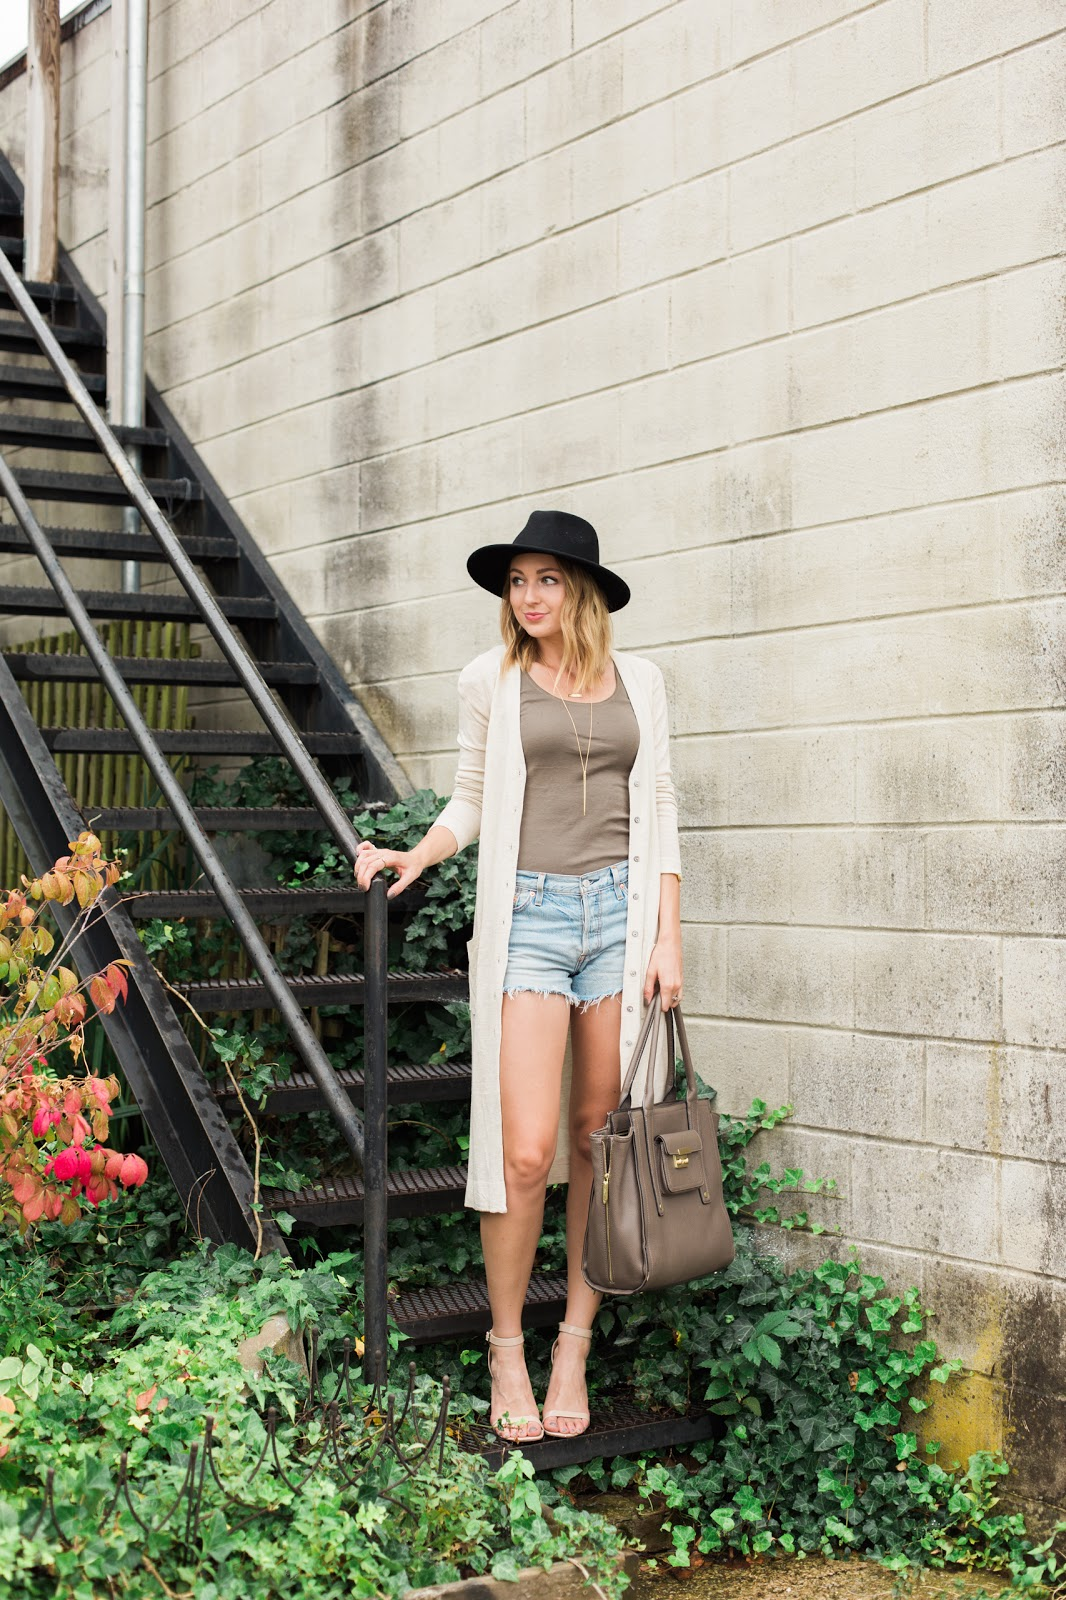 Long Cardigan with Cutoffs and a Hat